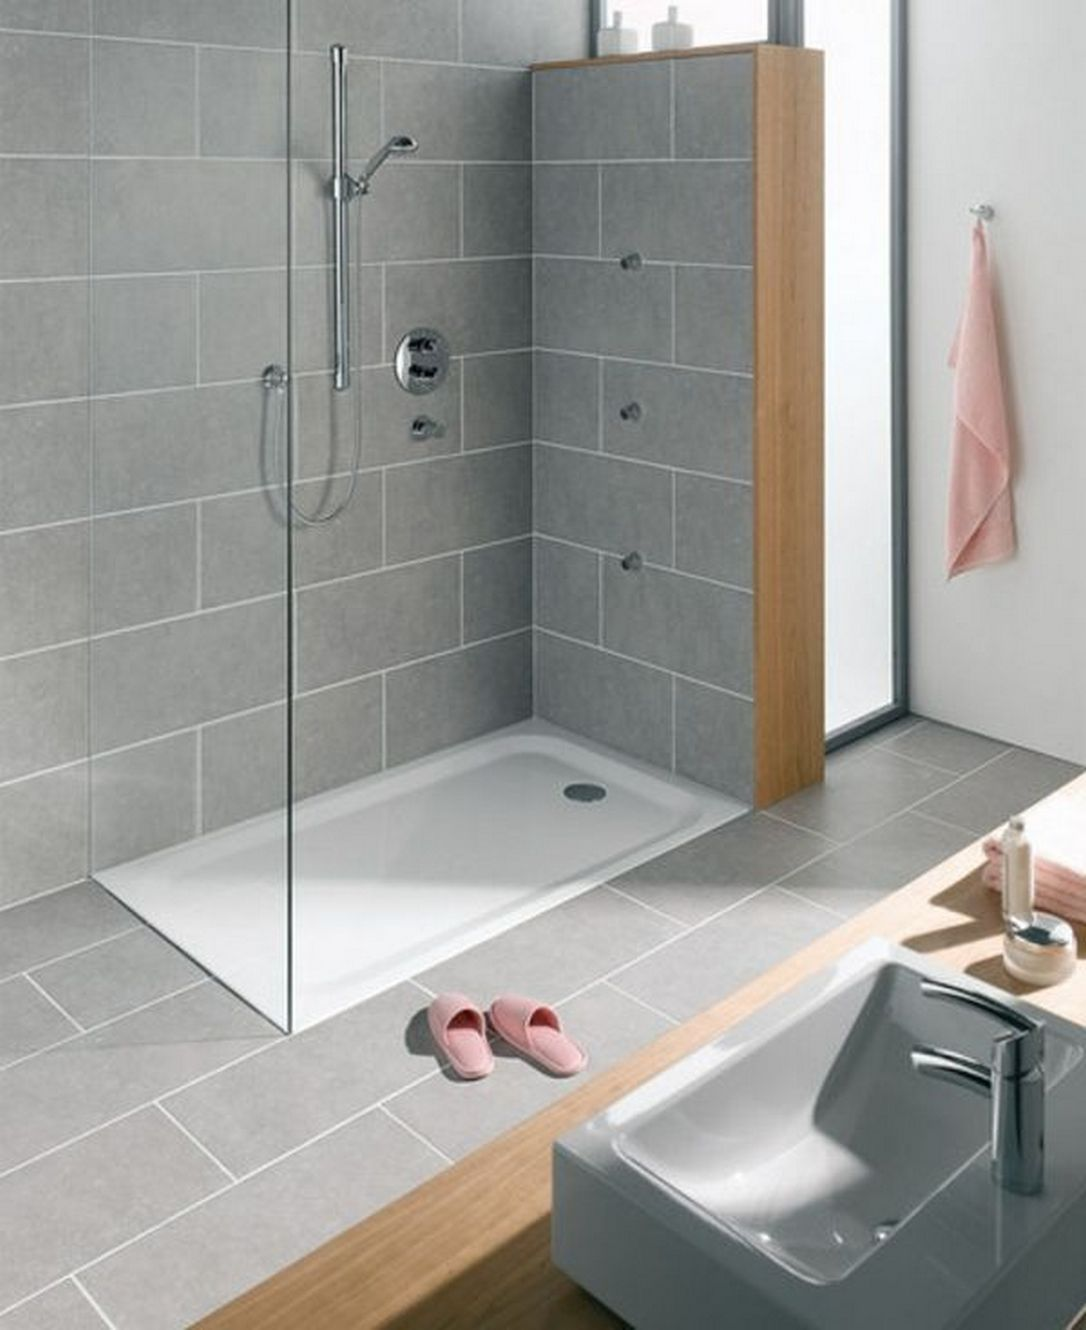 ✔70 inspiring shower tray for your bathroom renovation 64 #bathroomremodelideas #bathroomideas #bathroomremodeling #bathroomdecor #bathroomdecoration #bathroomideasonasmallbudget #bathroomremodelonabudget #bathroomshowers #bathroomshowerdesigns #bathroomideasonabudget #bathroomrenovationideas #bathroomrenovation #bathroomshowernew #bathroomshowercorner #bathroomdecorationideas #bathroomshowerwalkin #bathroomremodel #bathroomideassmallspace #bathroomdesignideas #bathroomdecorideas